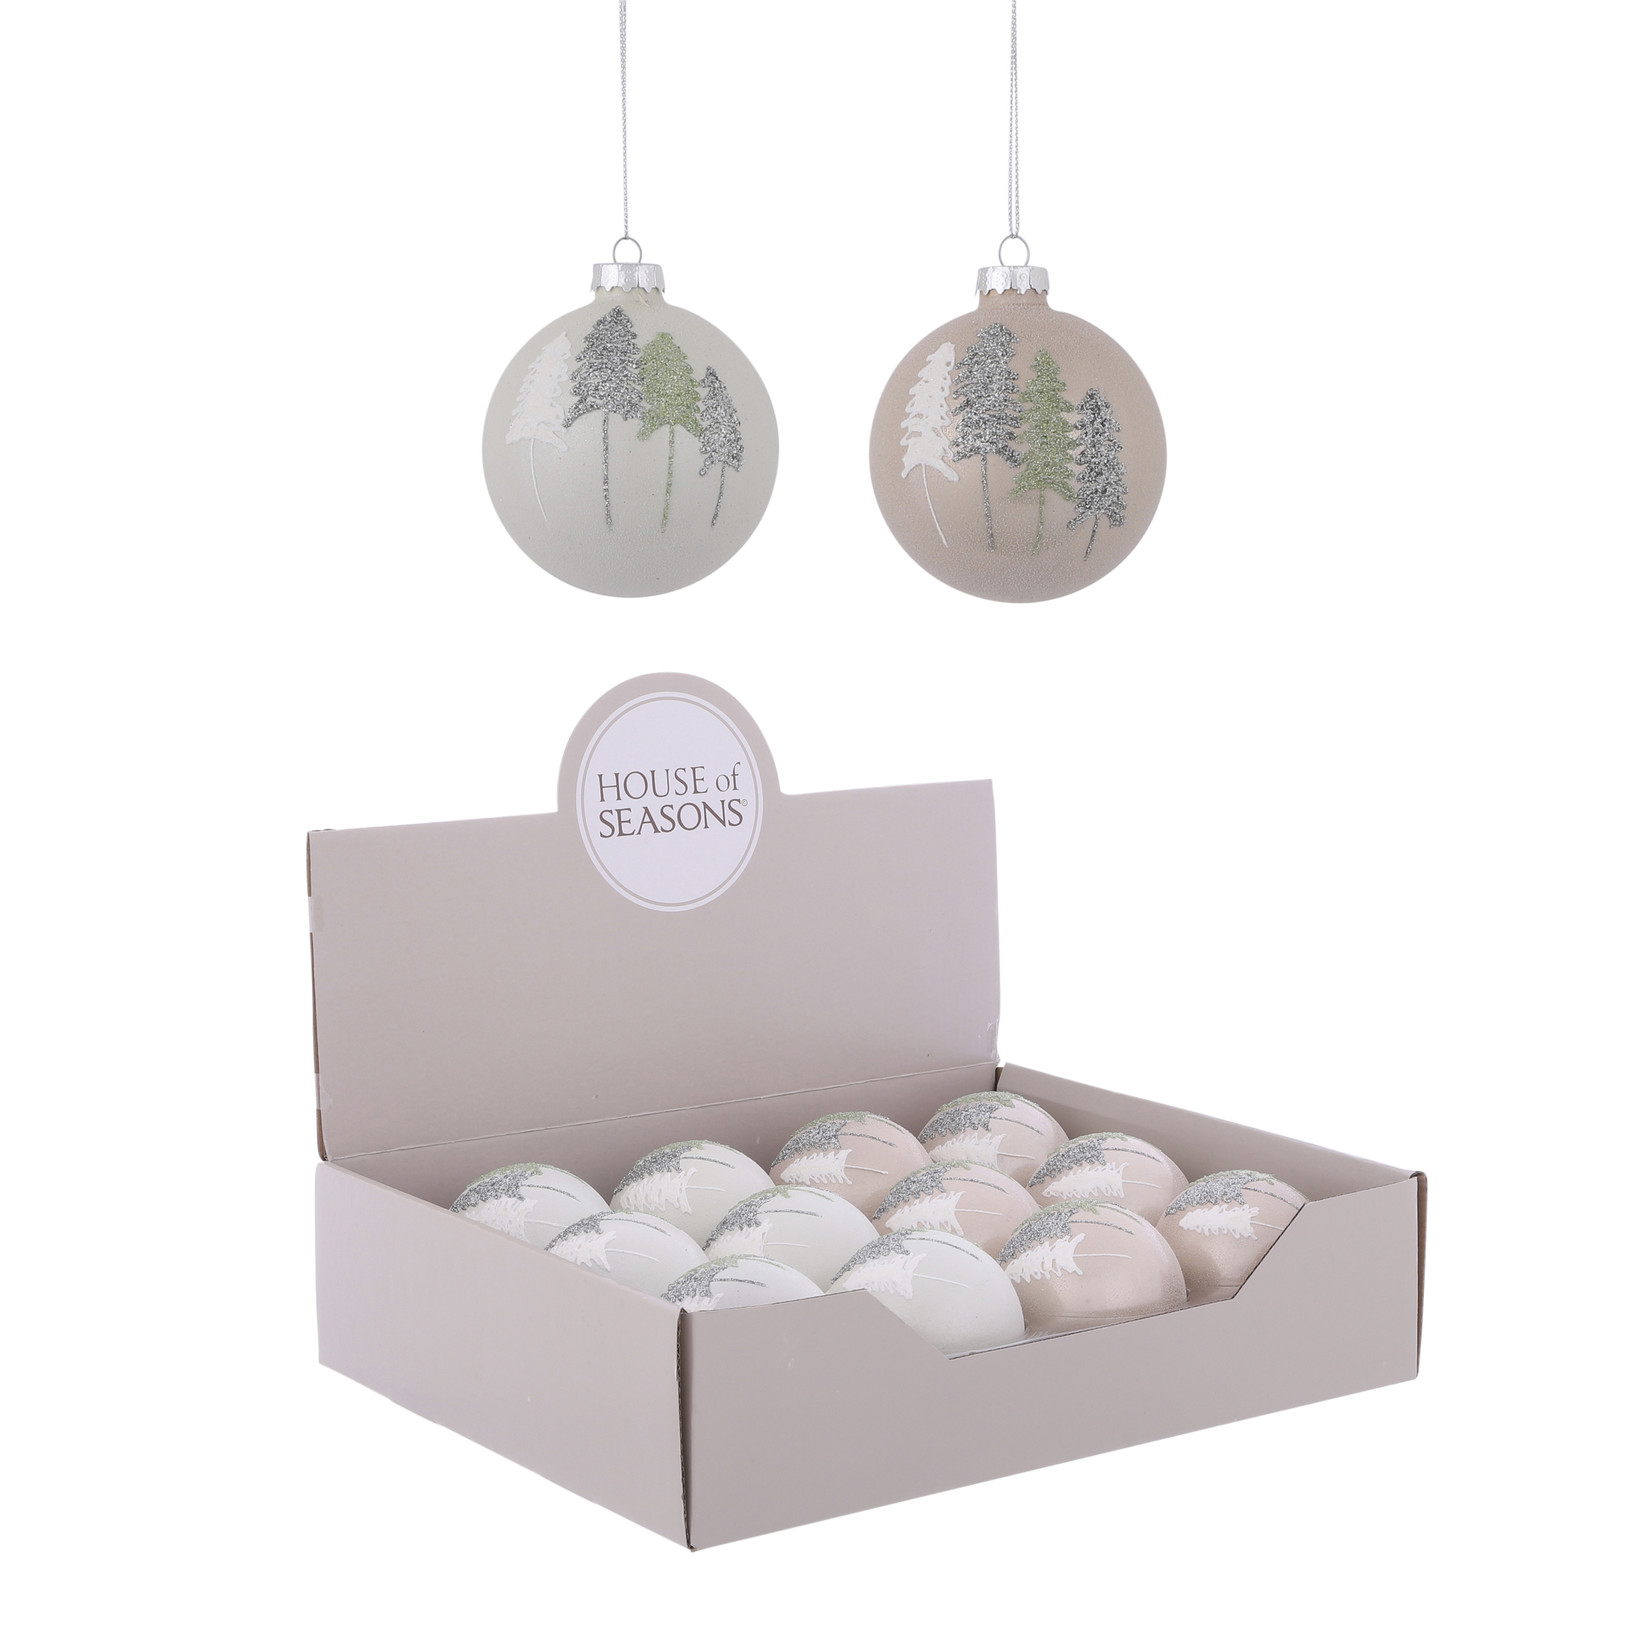 House of Seasons Ornament bal wit transparant